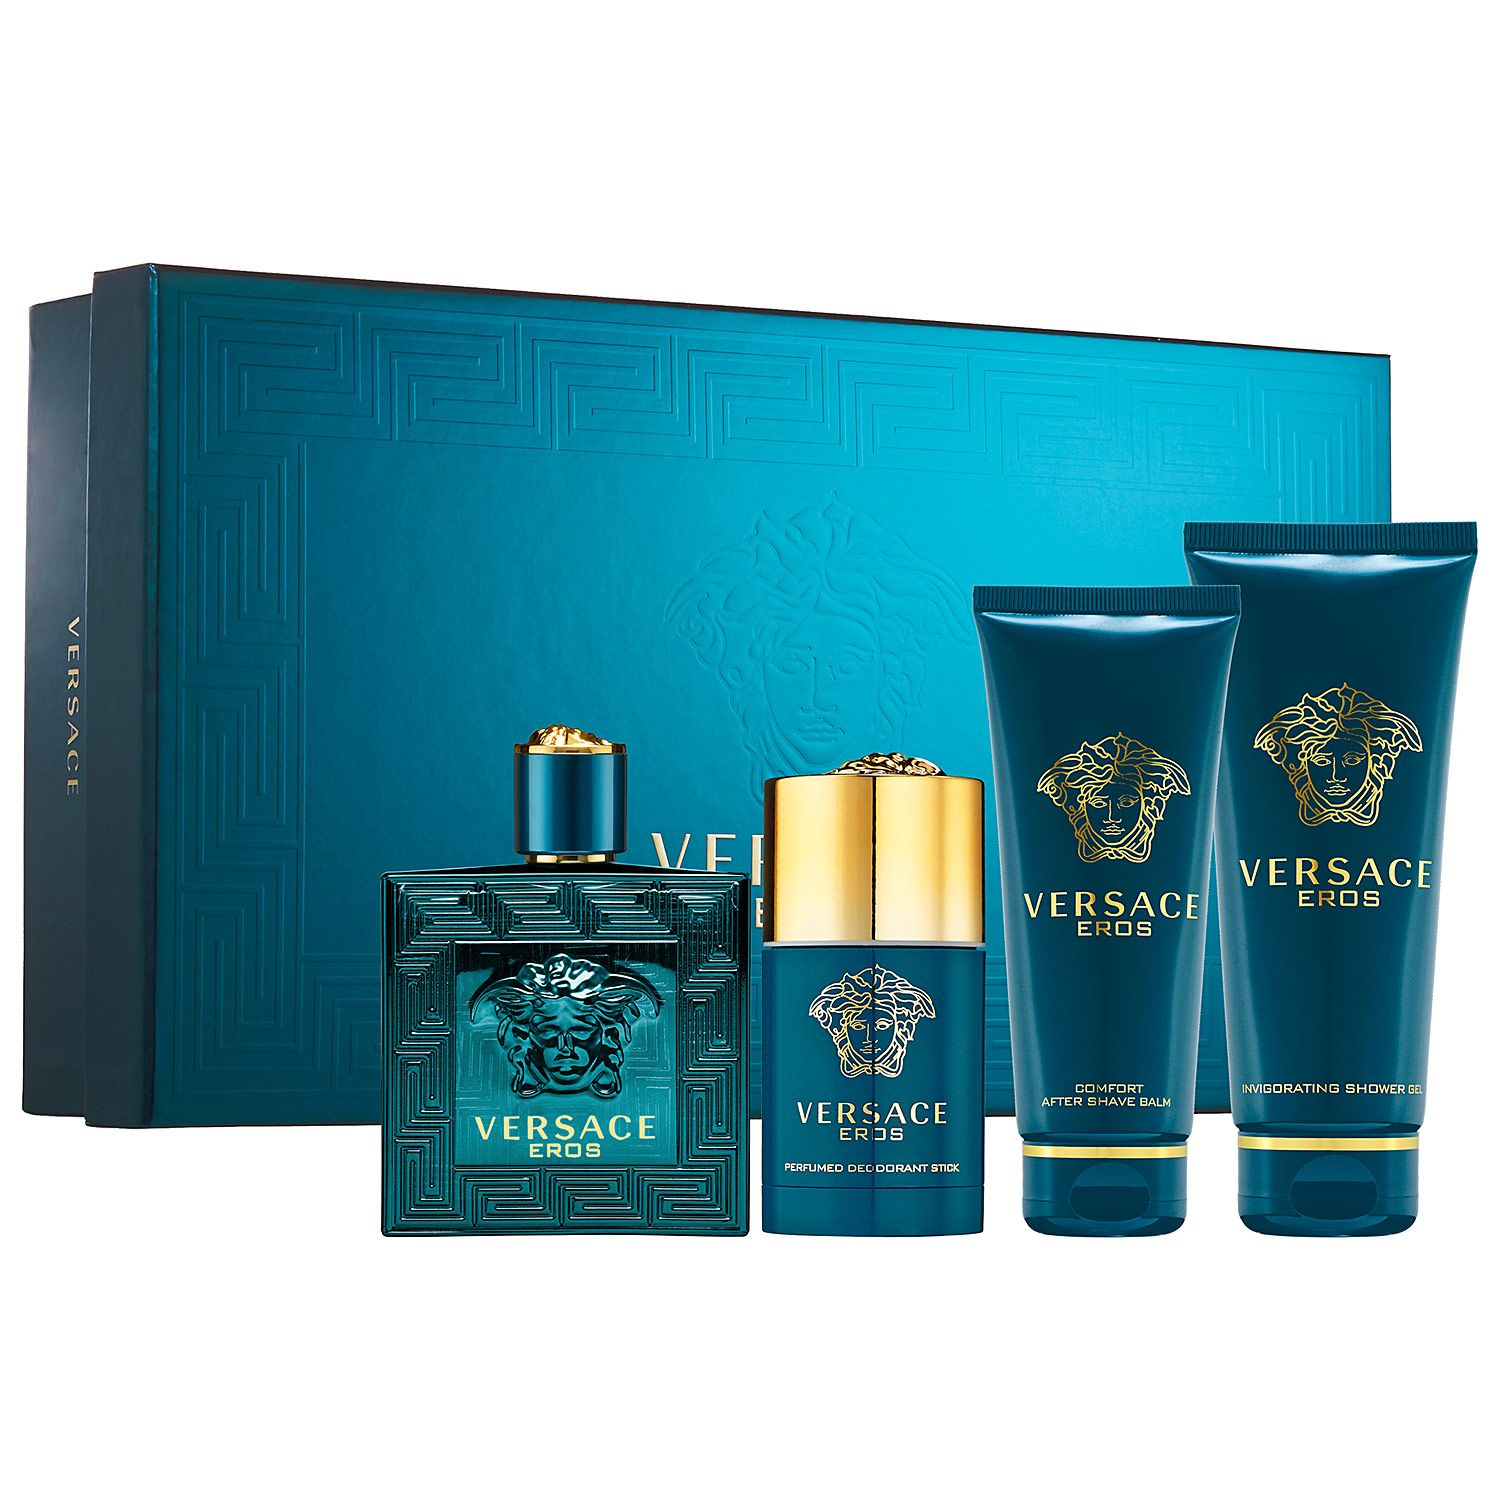 Versace Eros Gift Set  Sephora  gifts  giftsforhim   Gifts for Him ... 58371dfdcd